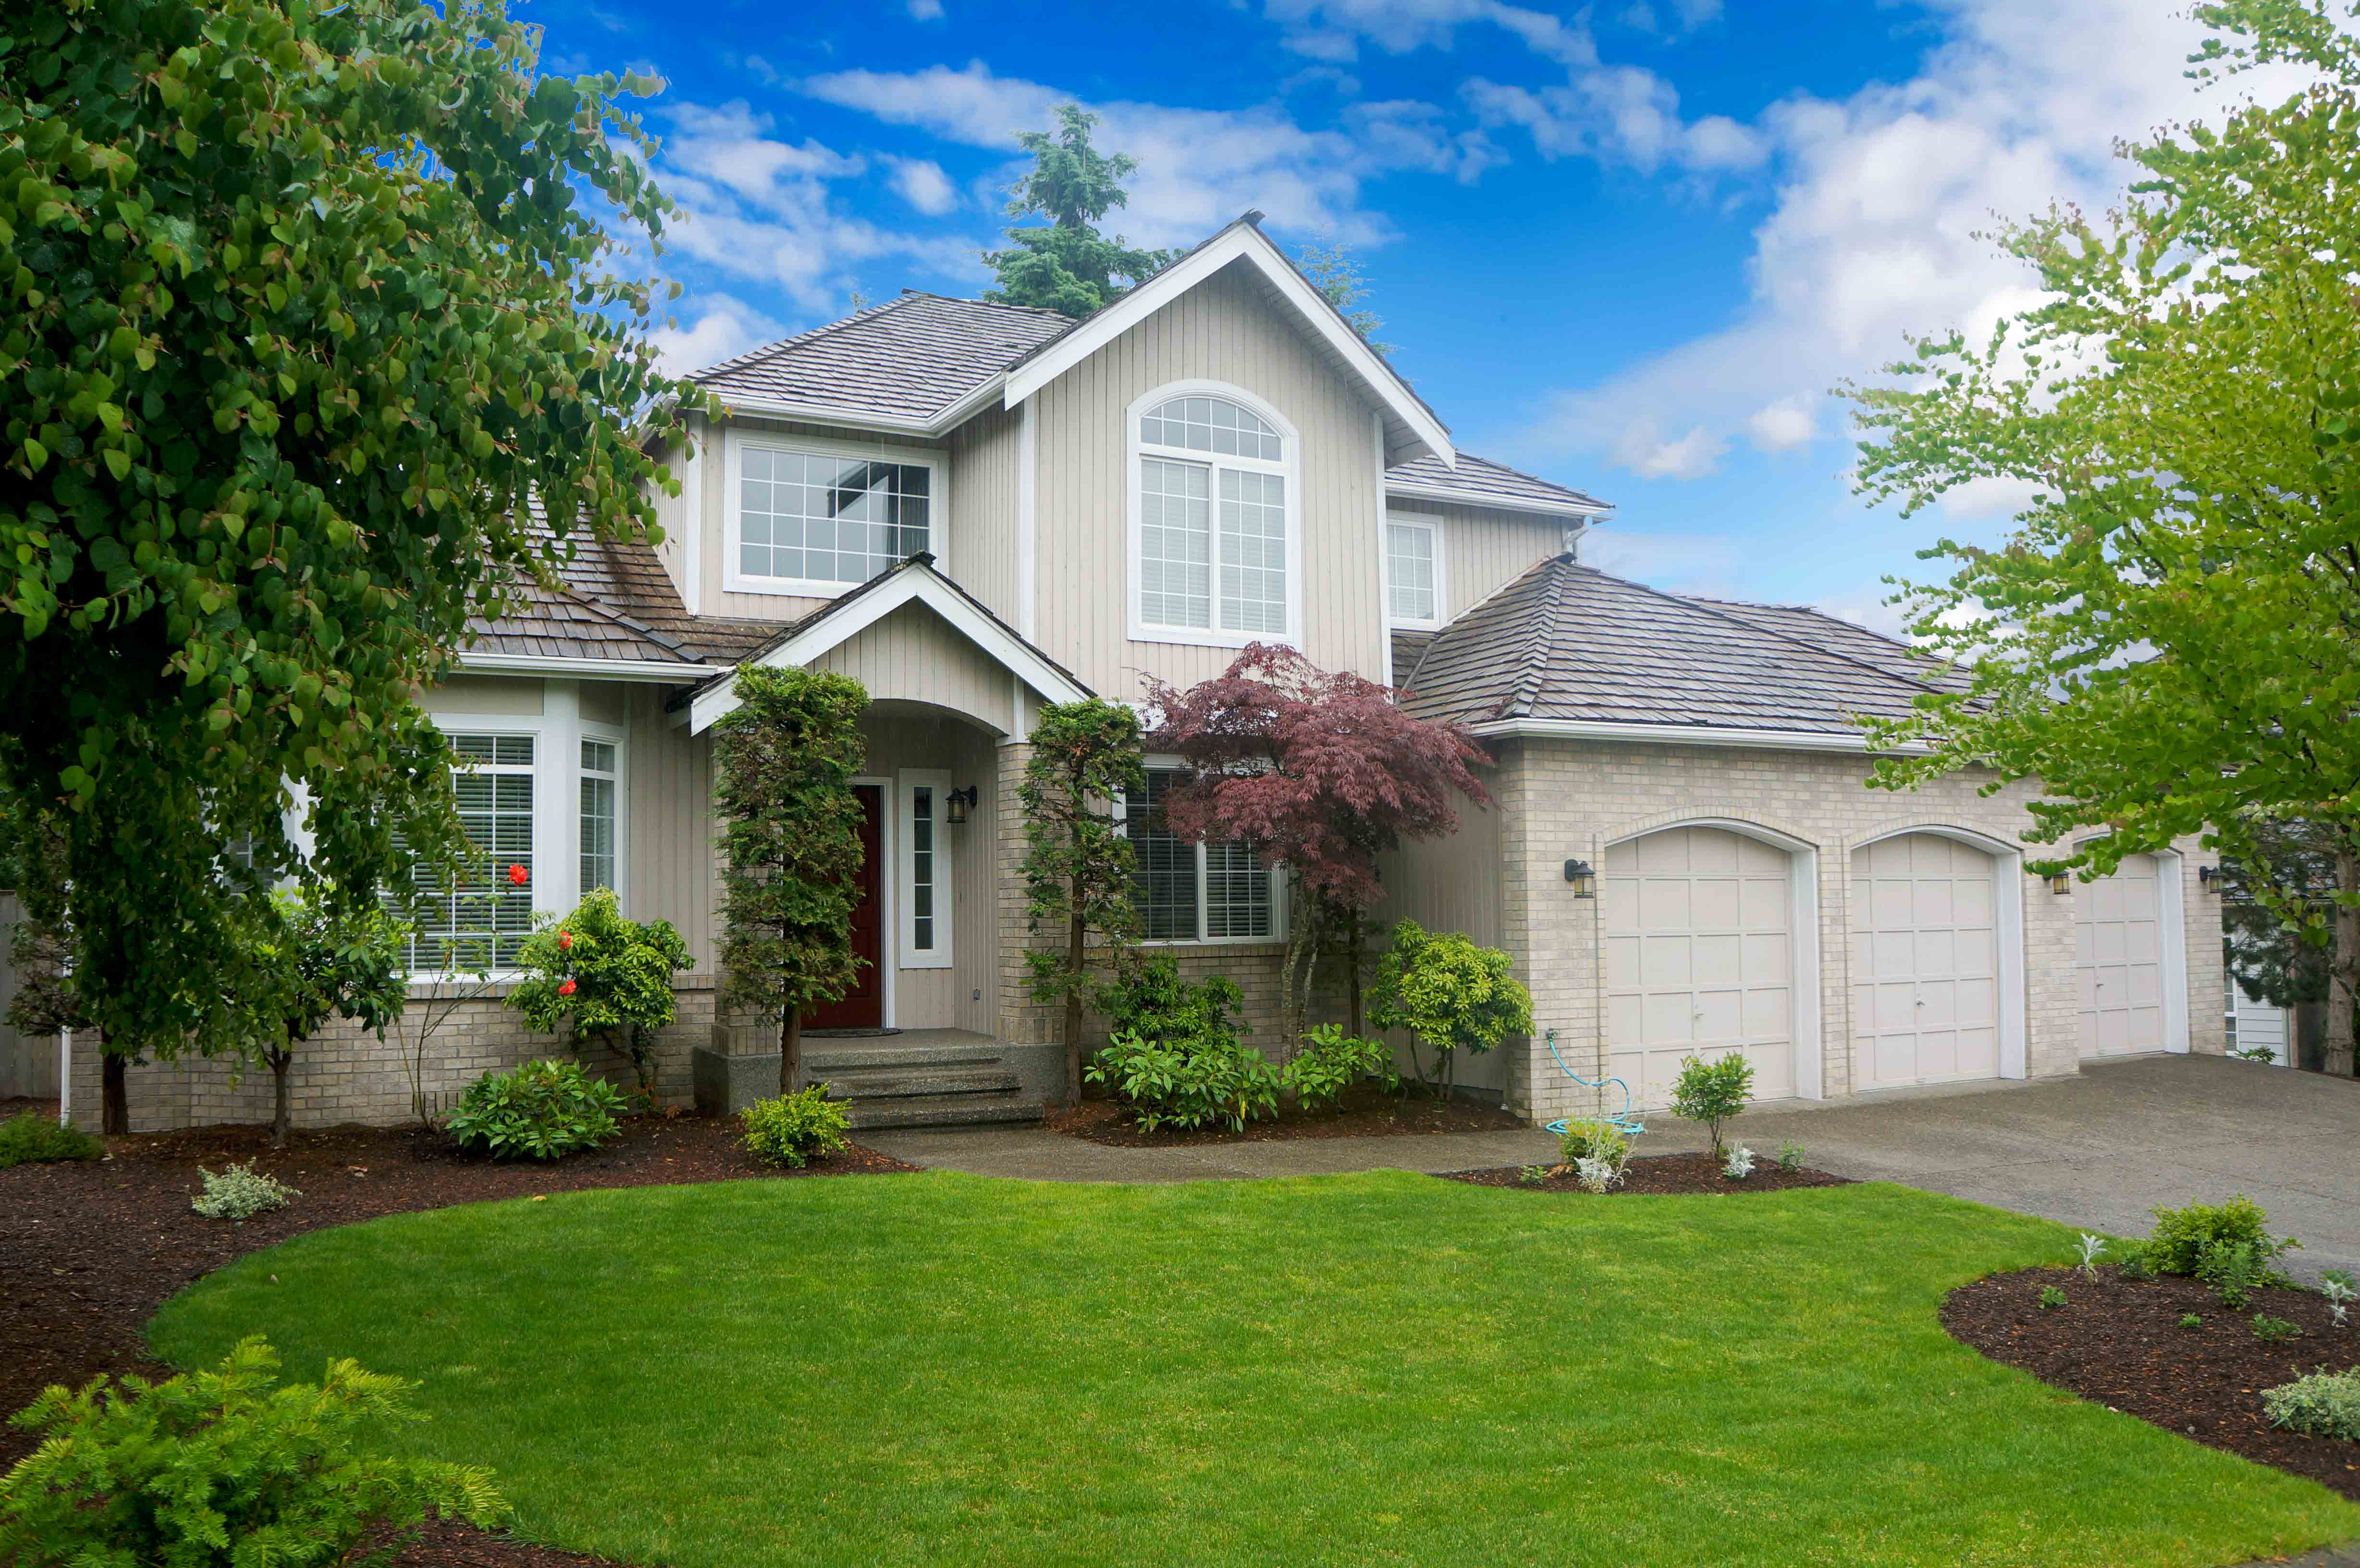 Maintain curb appeal to draw buyers